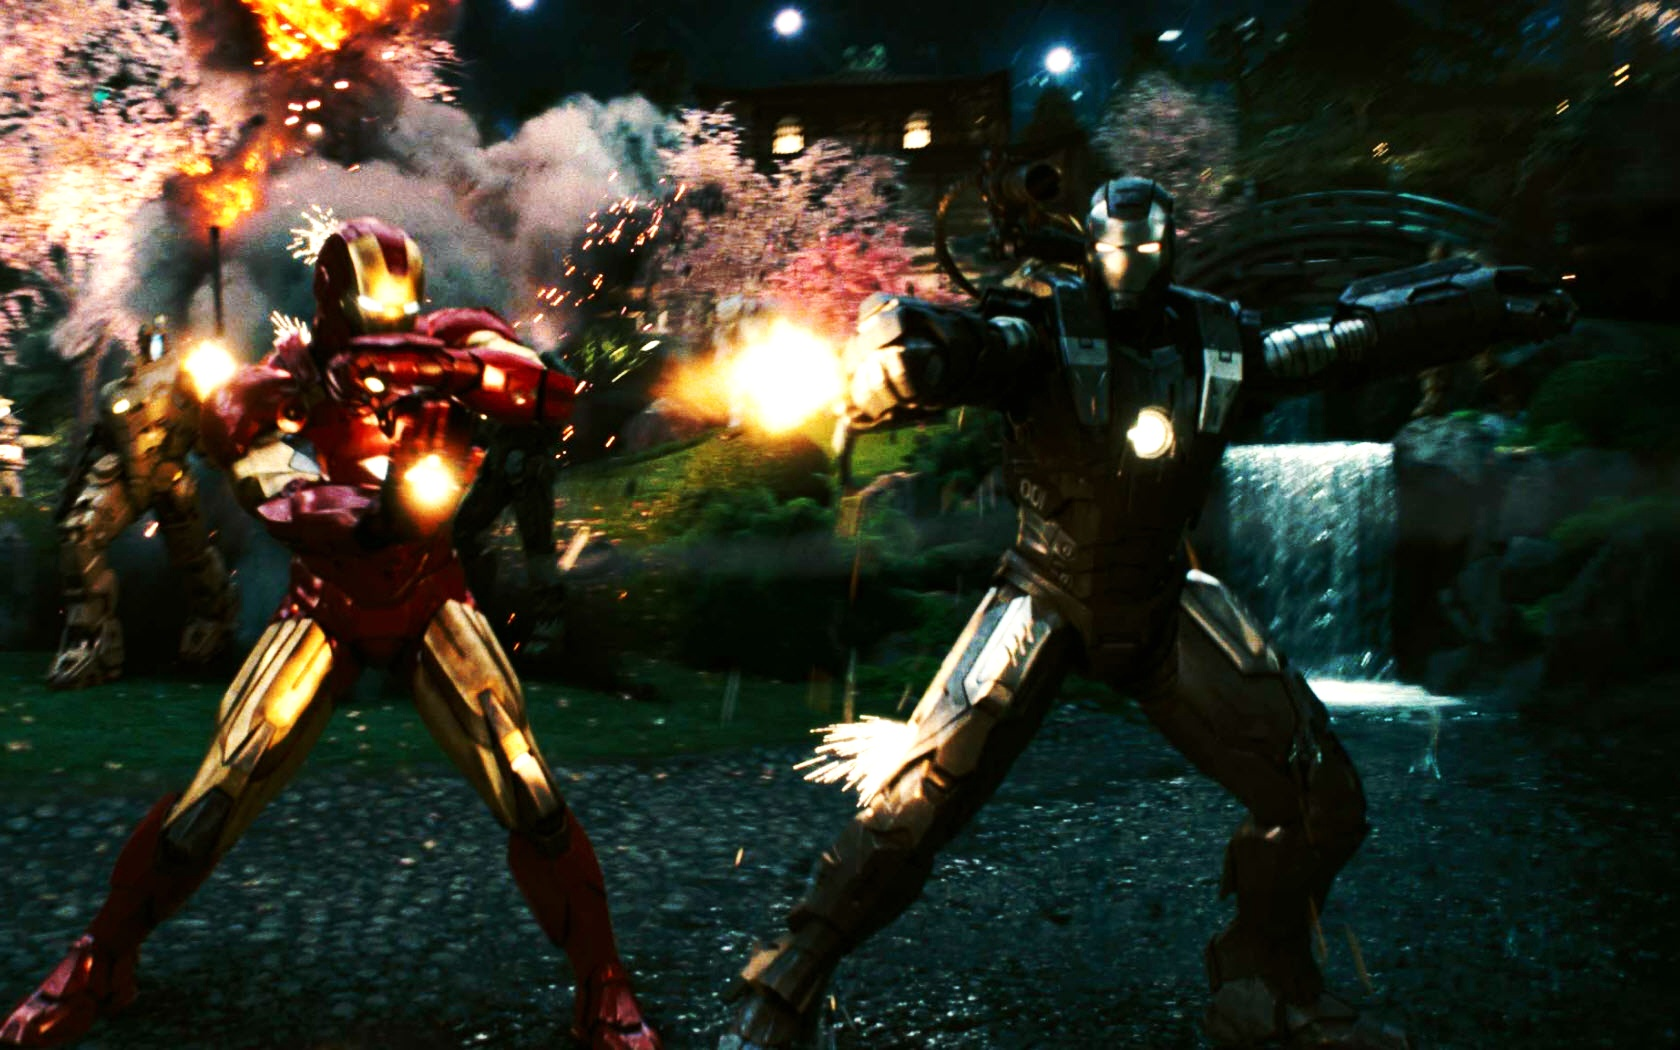 Iron Man 2 Last Scene 350.47 Kb